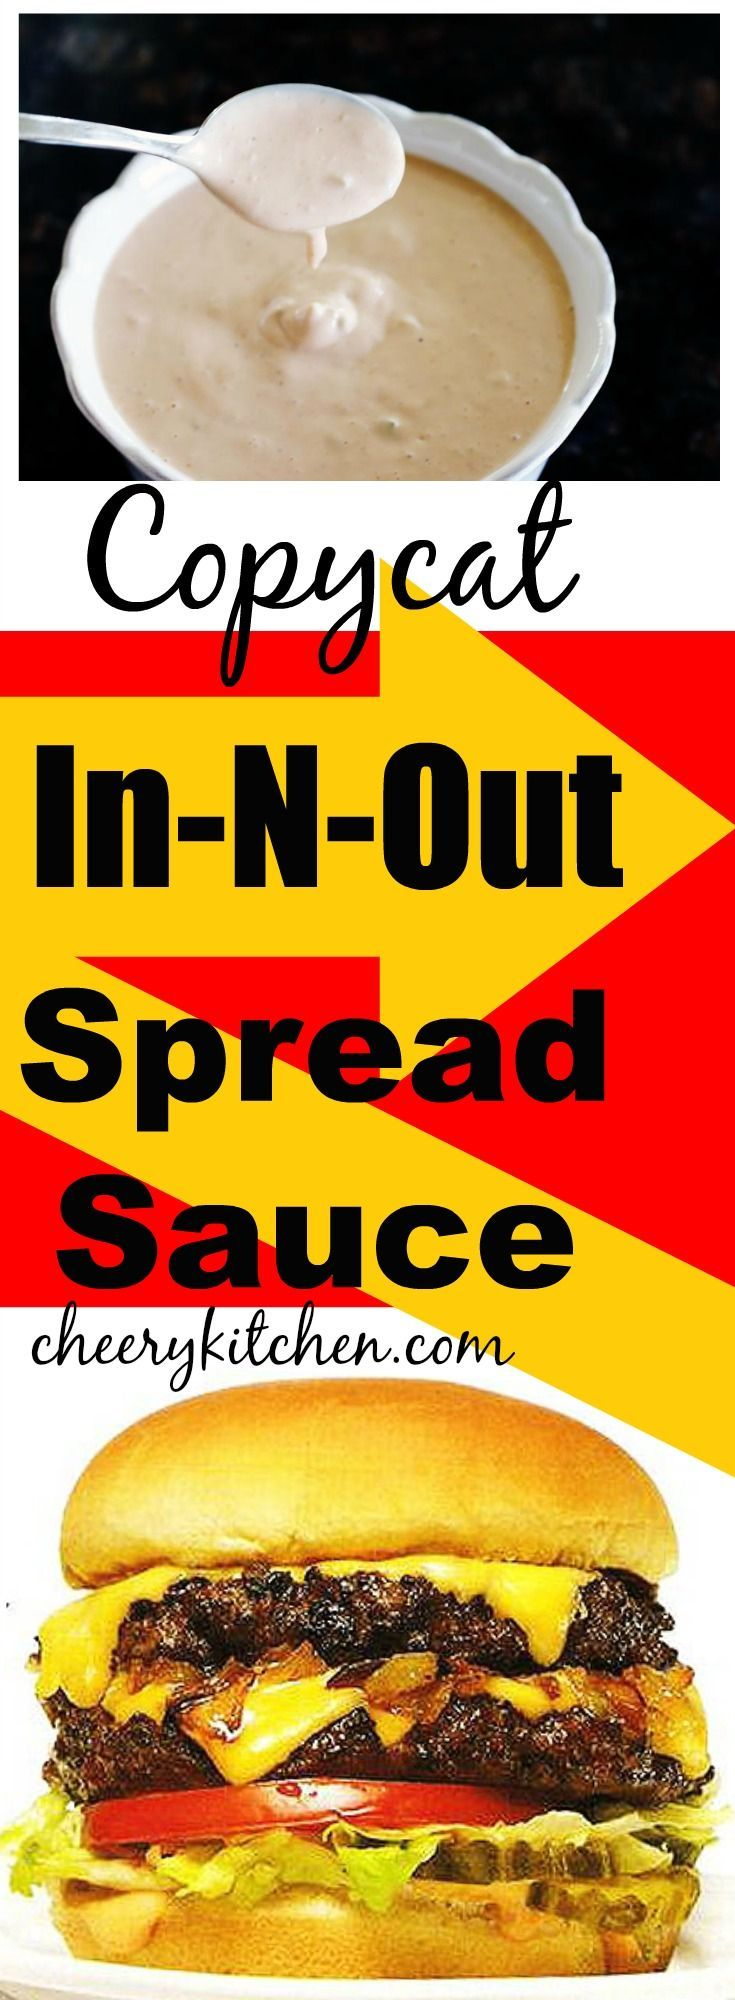 Make your fries and burgers amazing with our Copycat In-N-Out Spread Sauce. Serve it all double-double and animal style!